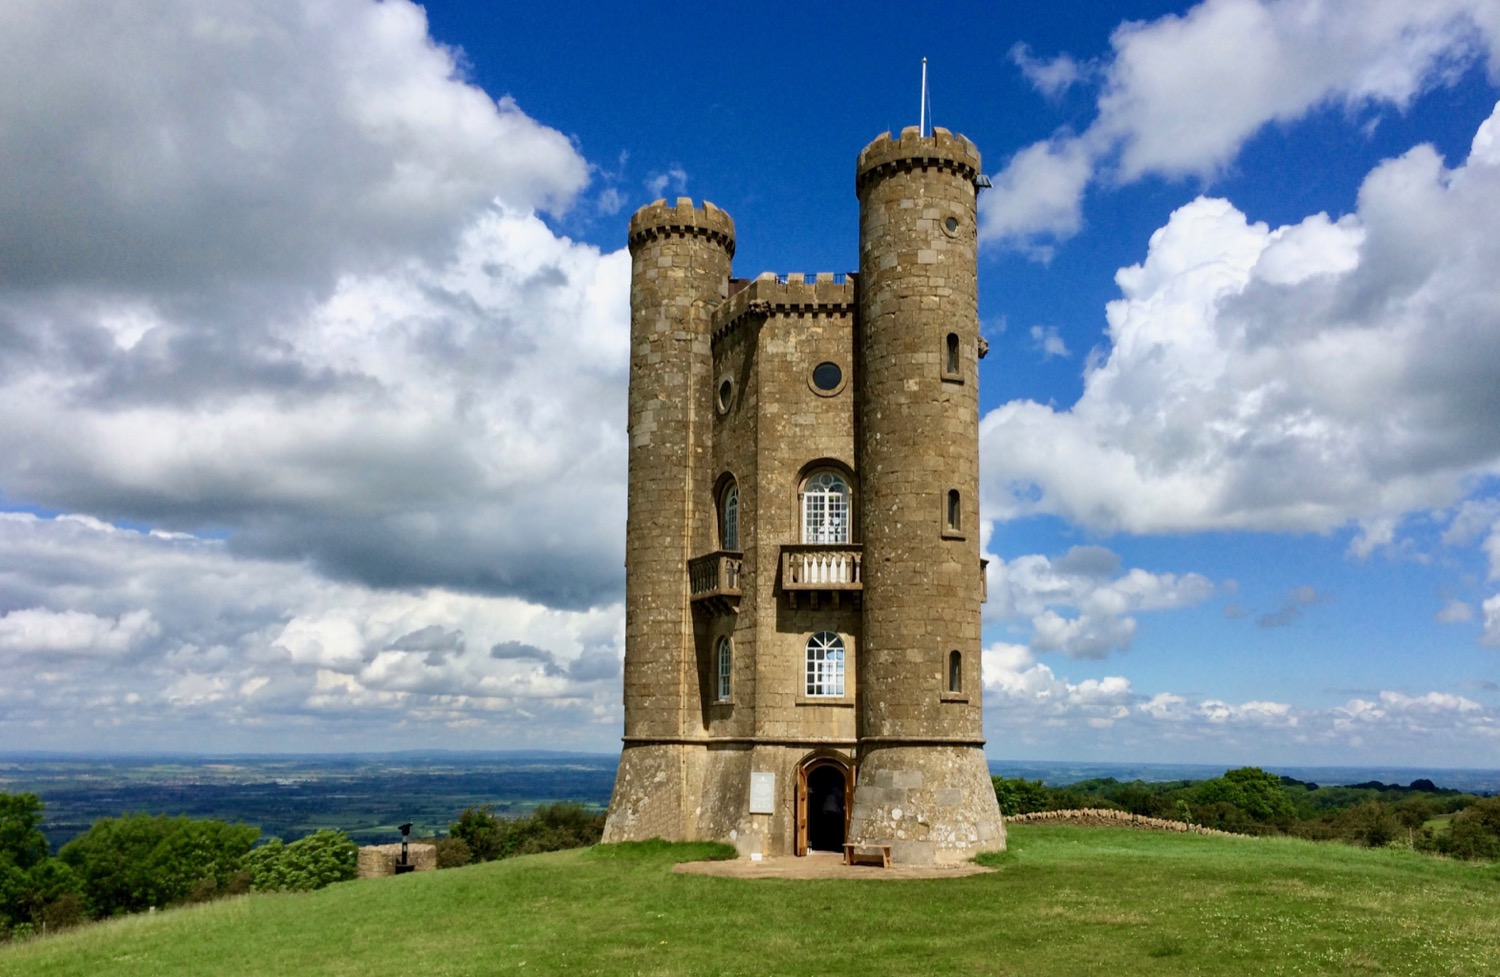 Broadway Tower, a few miles from where Kirk lives.